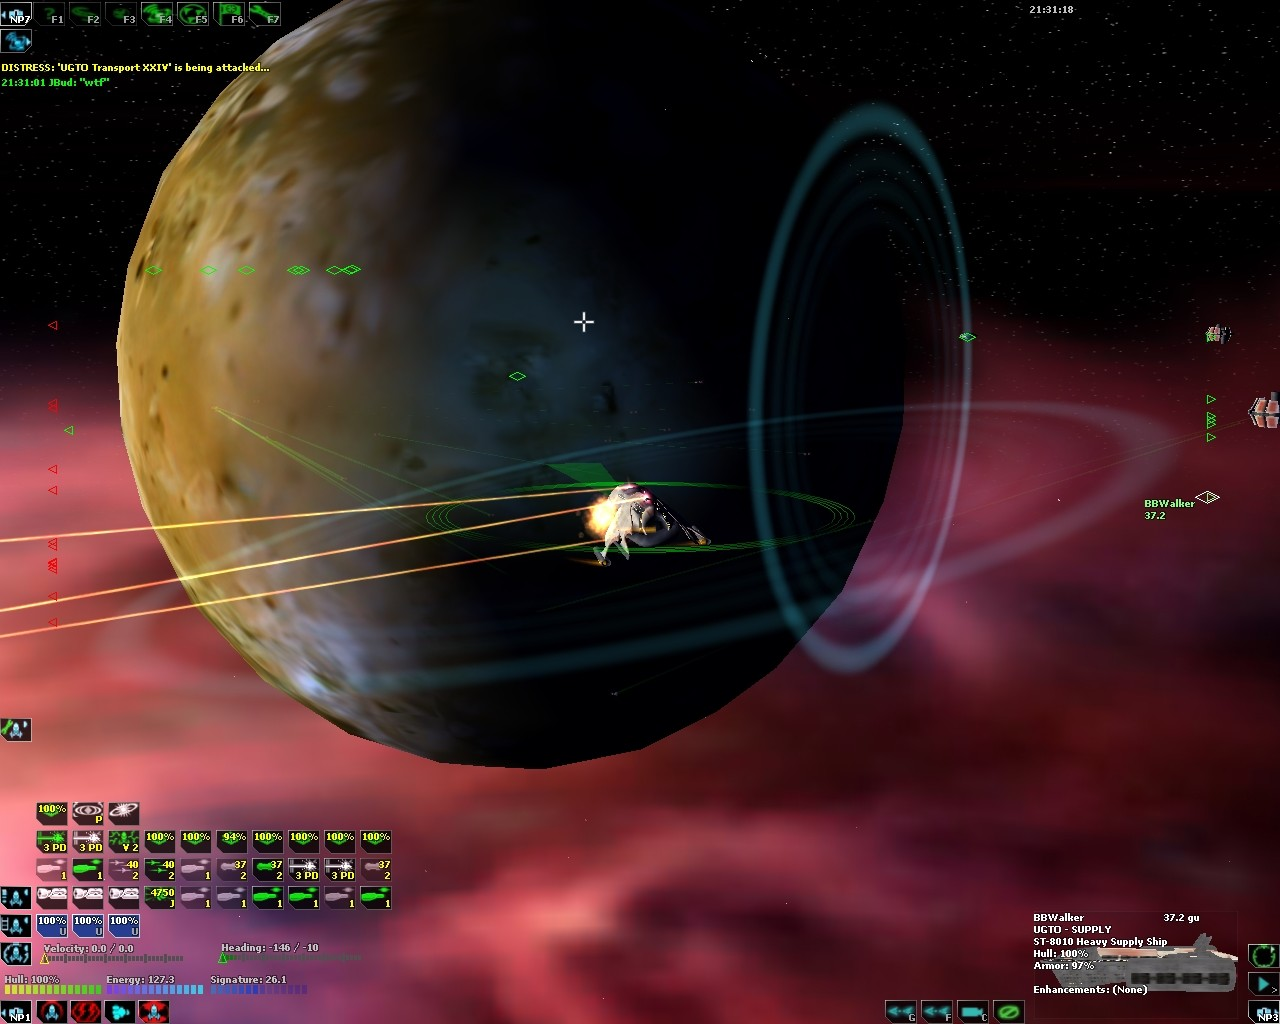 DarkSpace - An Ion Tracker Missile explosion on a UGTO Cruiser